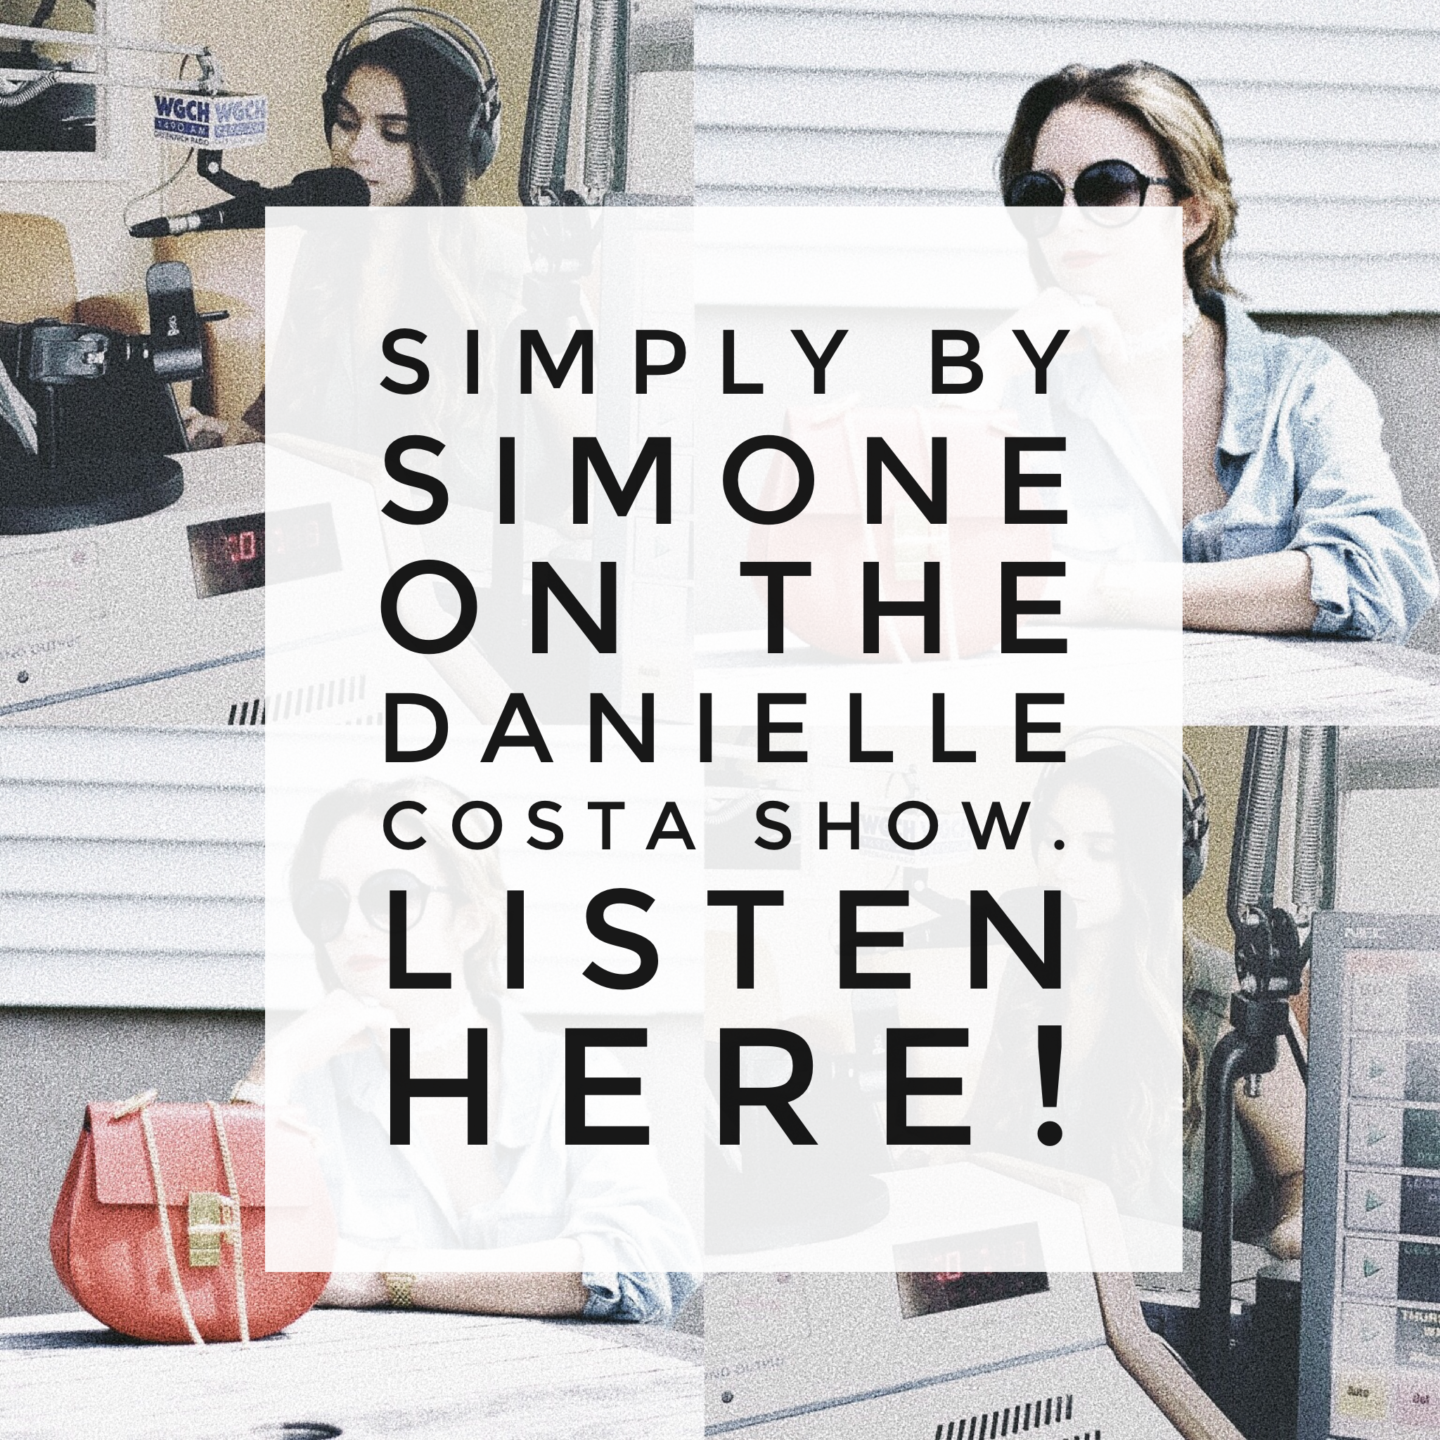 I'm On The Radio! The Danielle Costa Show, Listen Here